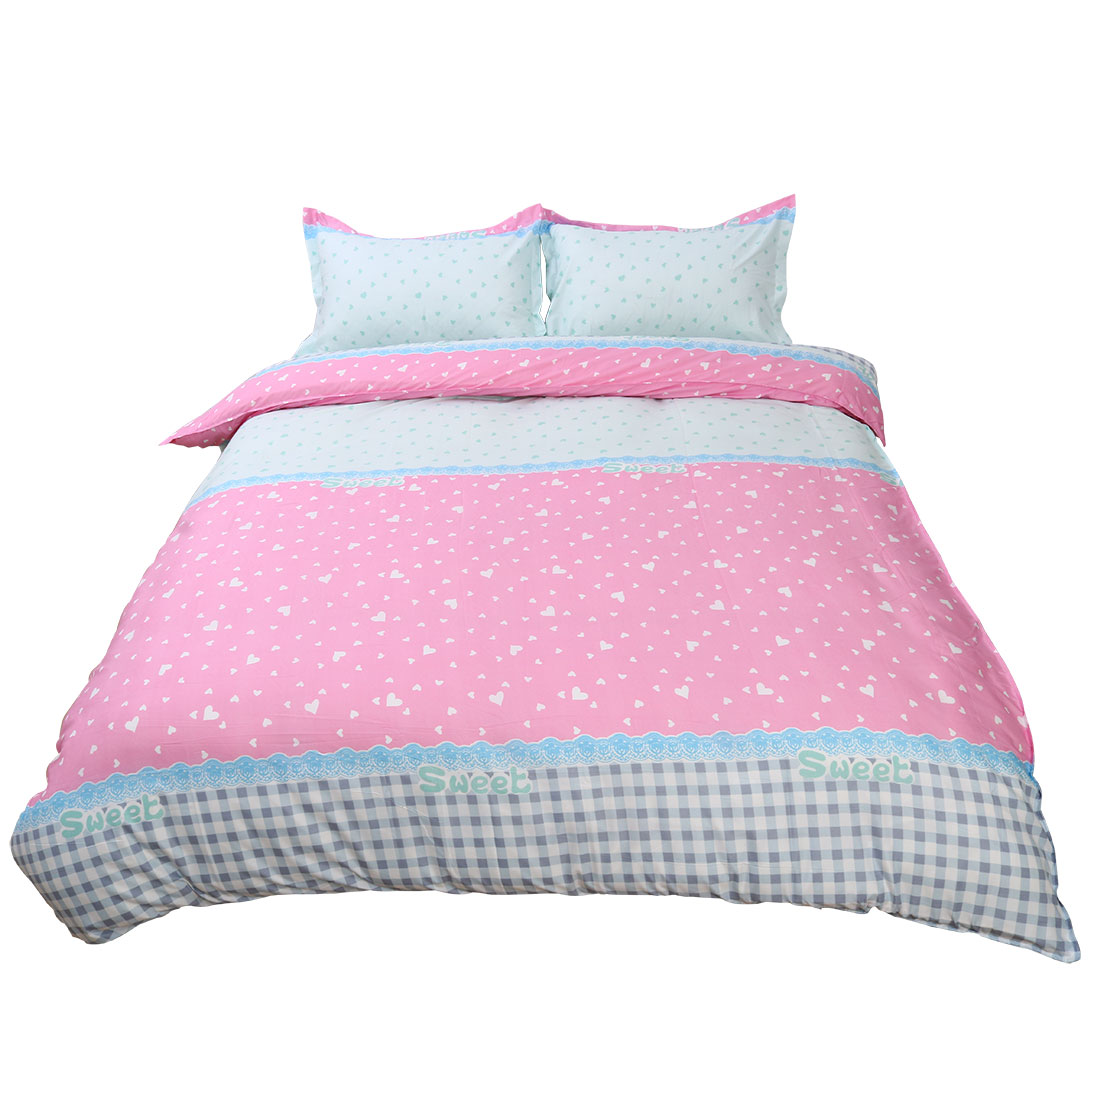 Hearts Pattern Duvet Cover Pillowcase Quilt Cover Bedding Set King Size Pink